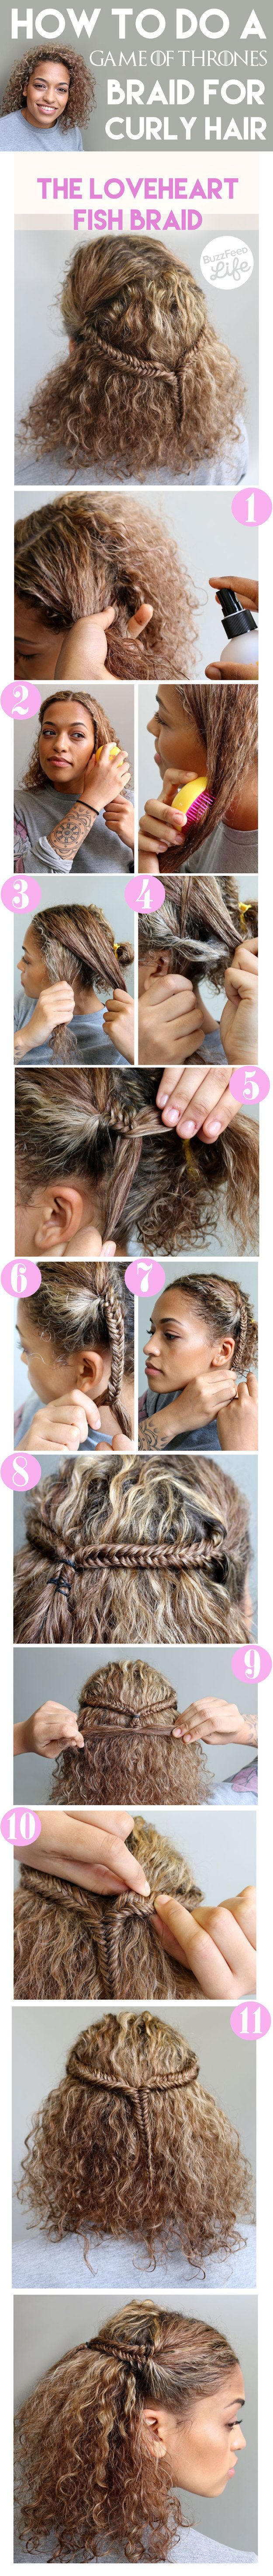 Game of Thrones inspired braid for curly hair